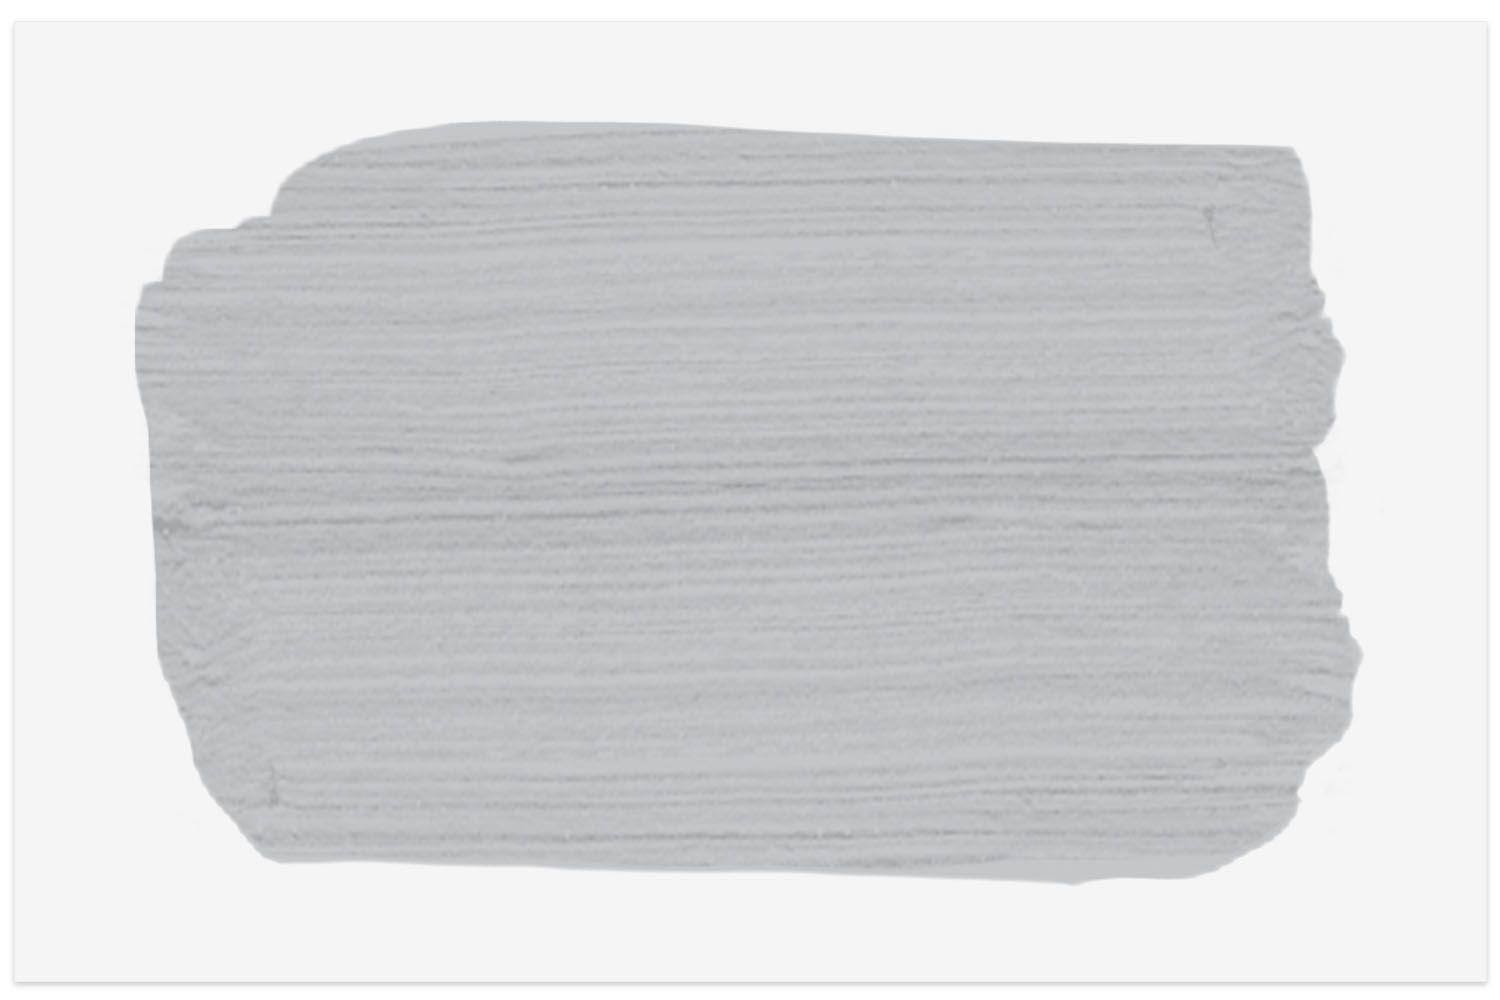 Glacier Gray paint swatch from Pantone